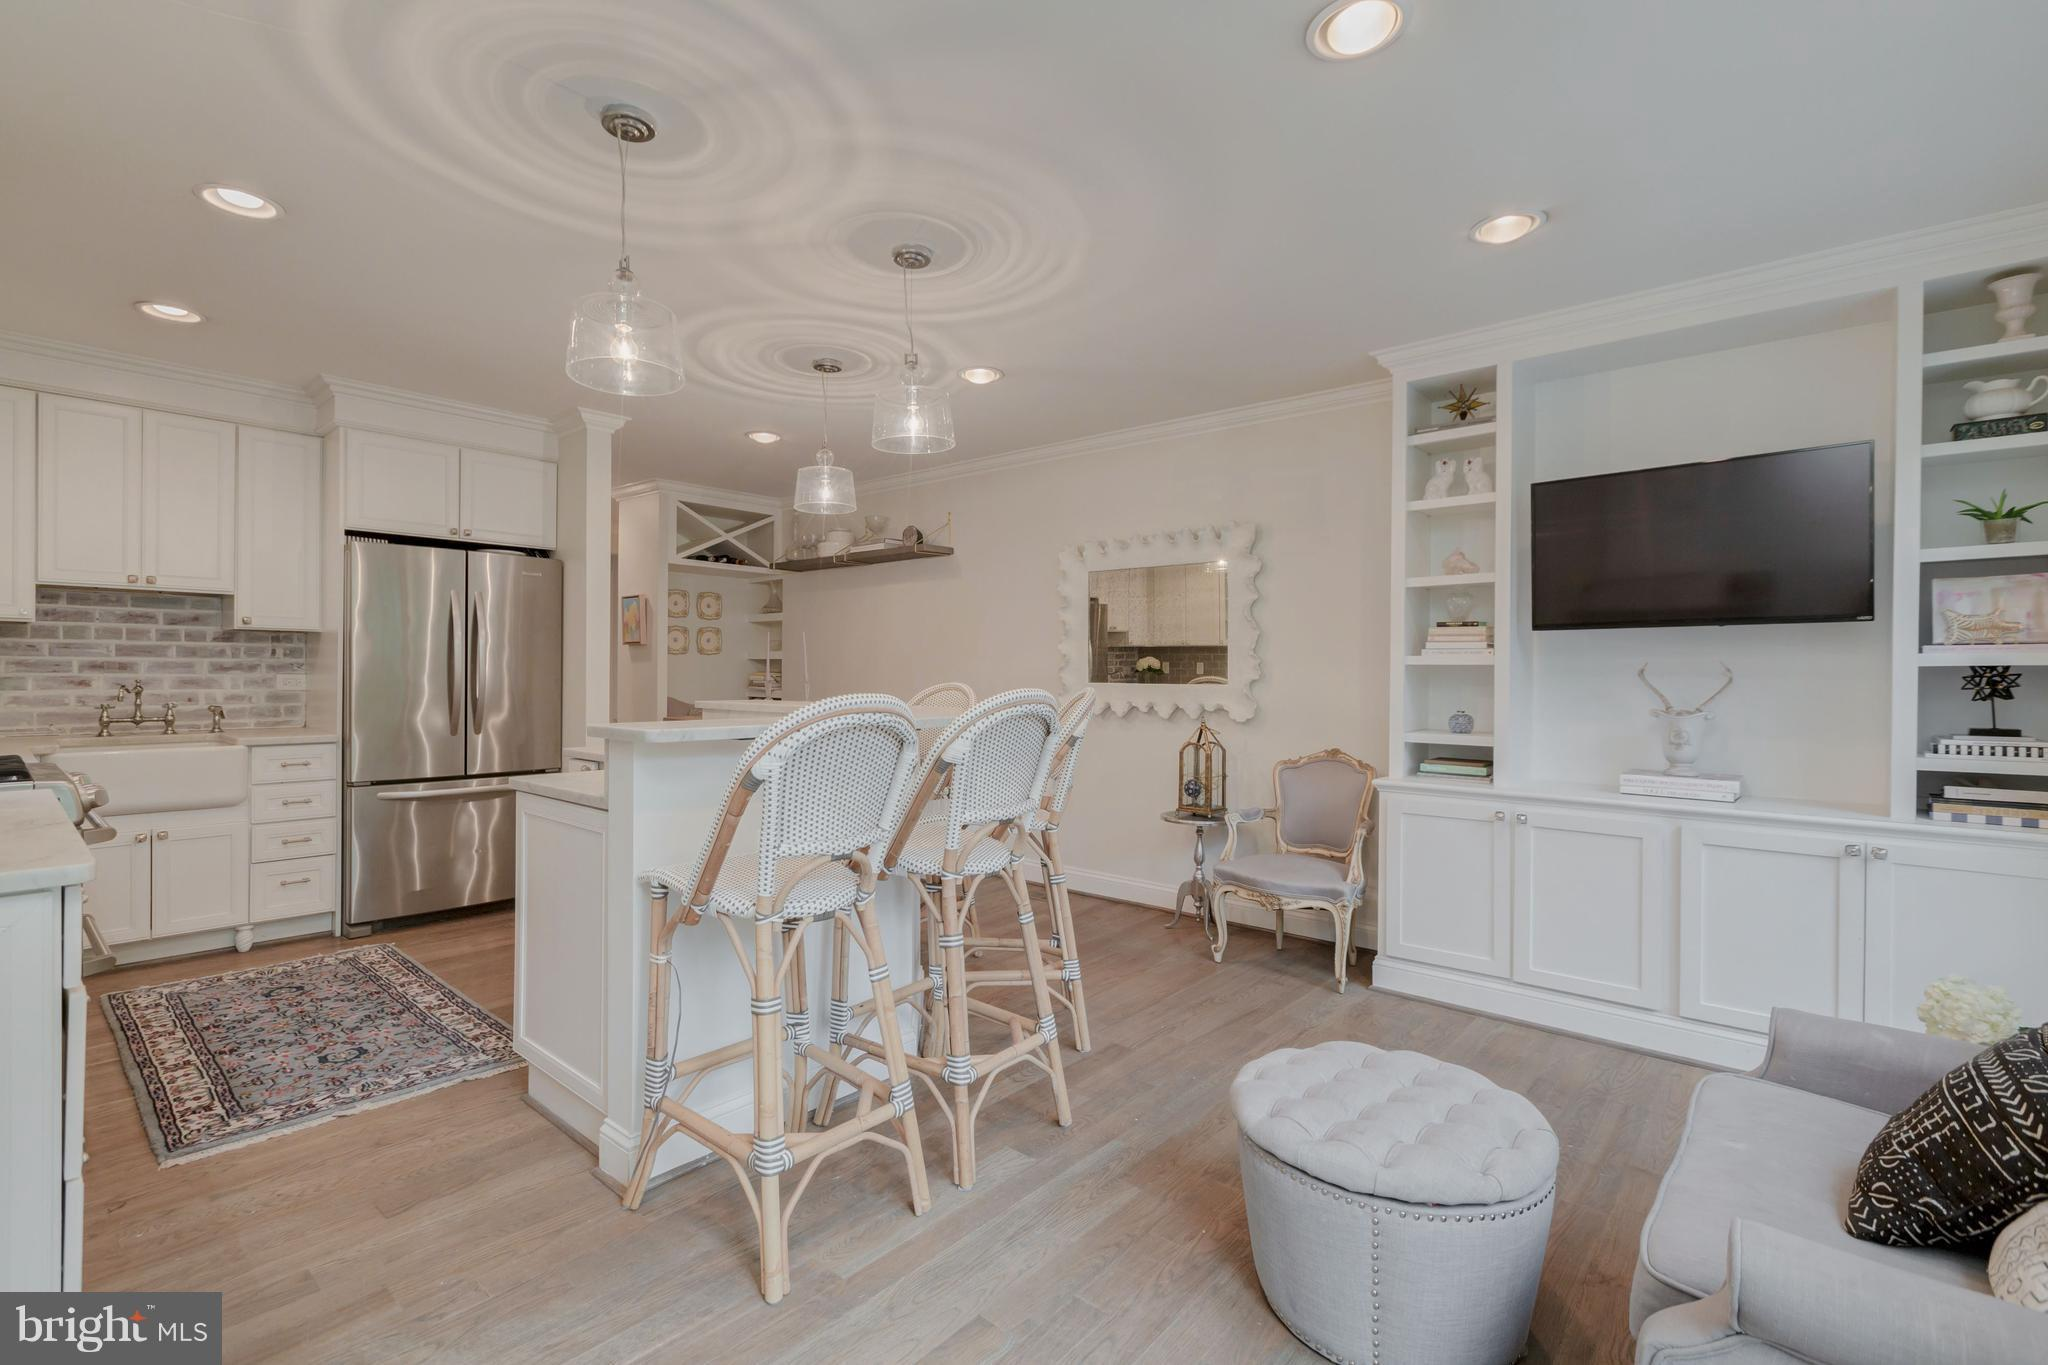 A 2015 magazine-worthy expansion doubled the square footage of this magnificent townhome. Chef's kitchen & family rm w/ Carrara marble, SS, island & breakfast nook. Luxurious master BA w/ clawfoot tub, sep. shower, double vanity. 3 closets & walls of windows in MBR. 4 legal BR! Finished LL w/ full BA. High ceilings, white oak floors & handsome built-ins. Landscaped backyard w/ tiered patio & bar.